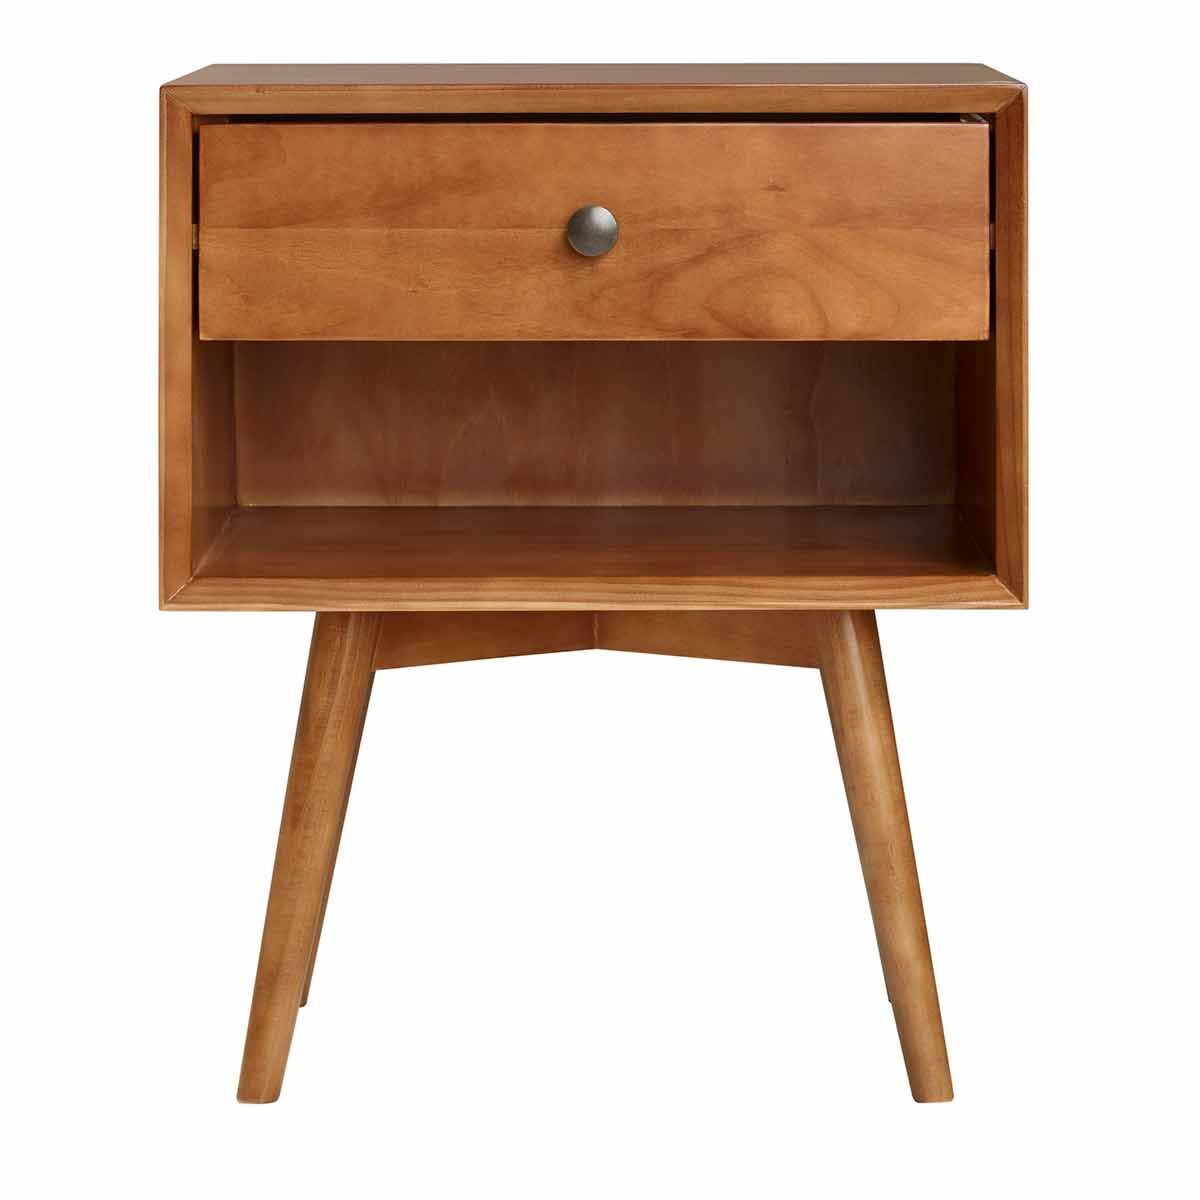 Ferrara Mid Century Solid Wood Nightstand with 1 Drawer